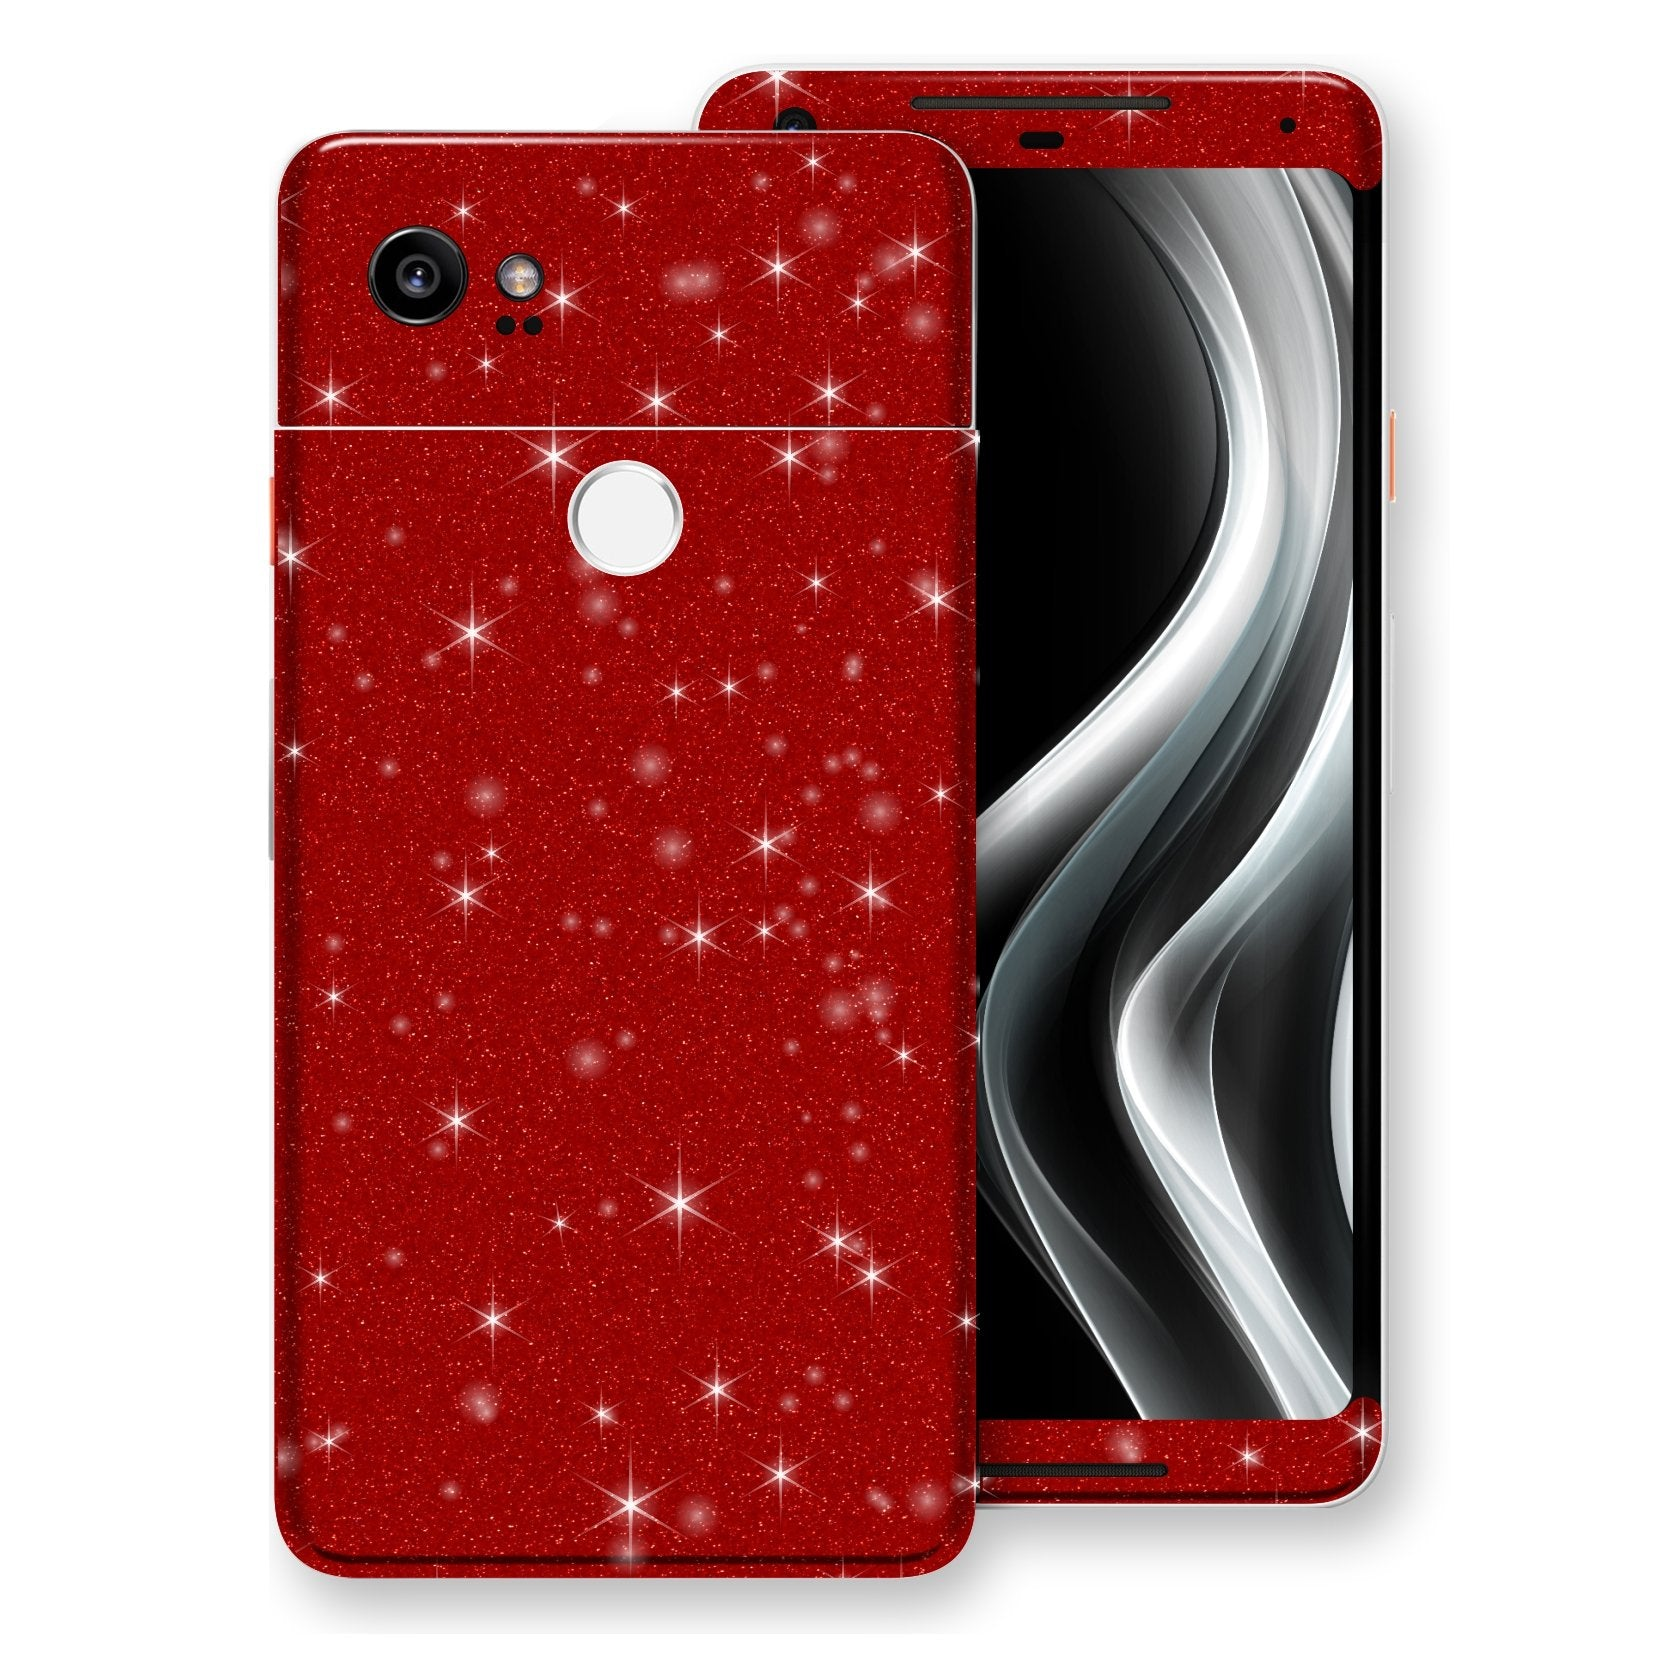 Google Pixel 2 XL Diamond Red Shimmering, Sparkling, Glitter Skin, Decal, Wrap, Protector, Cover by EasySkinz | EasySkinz.com